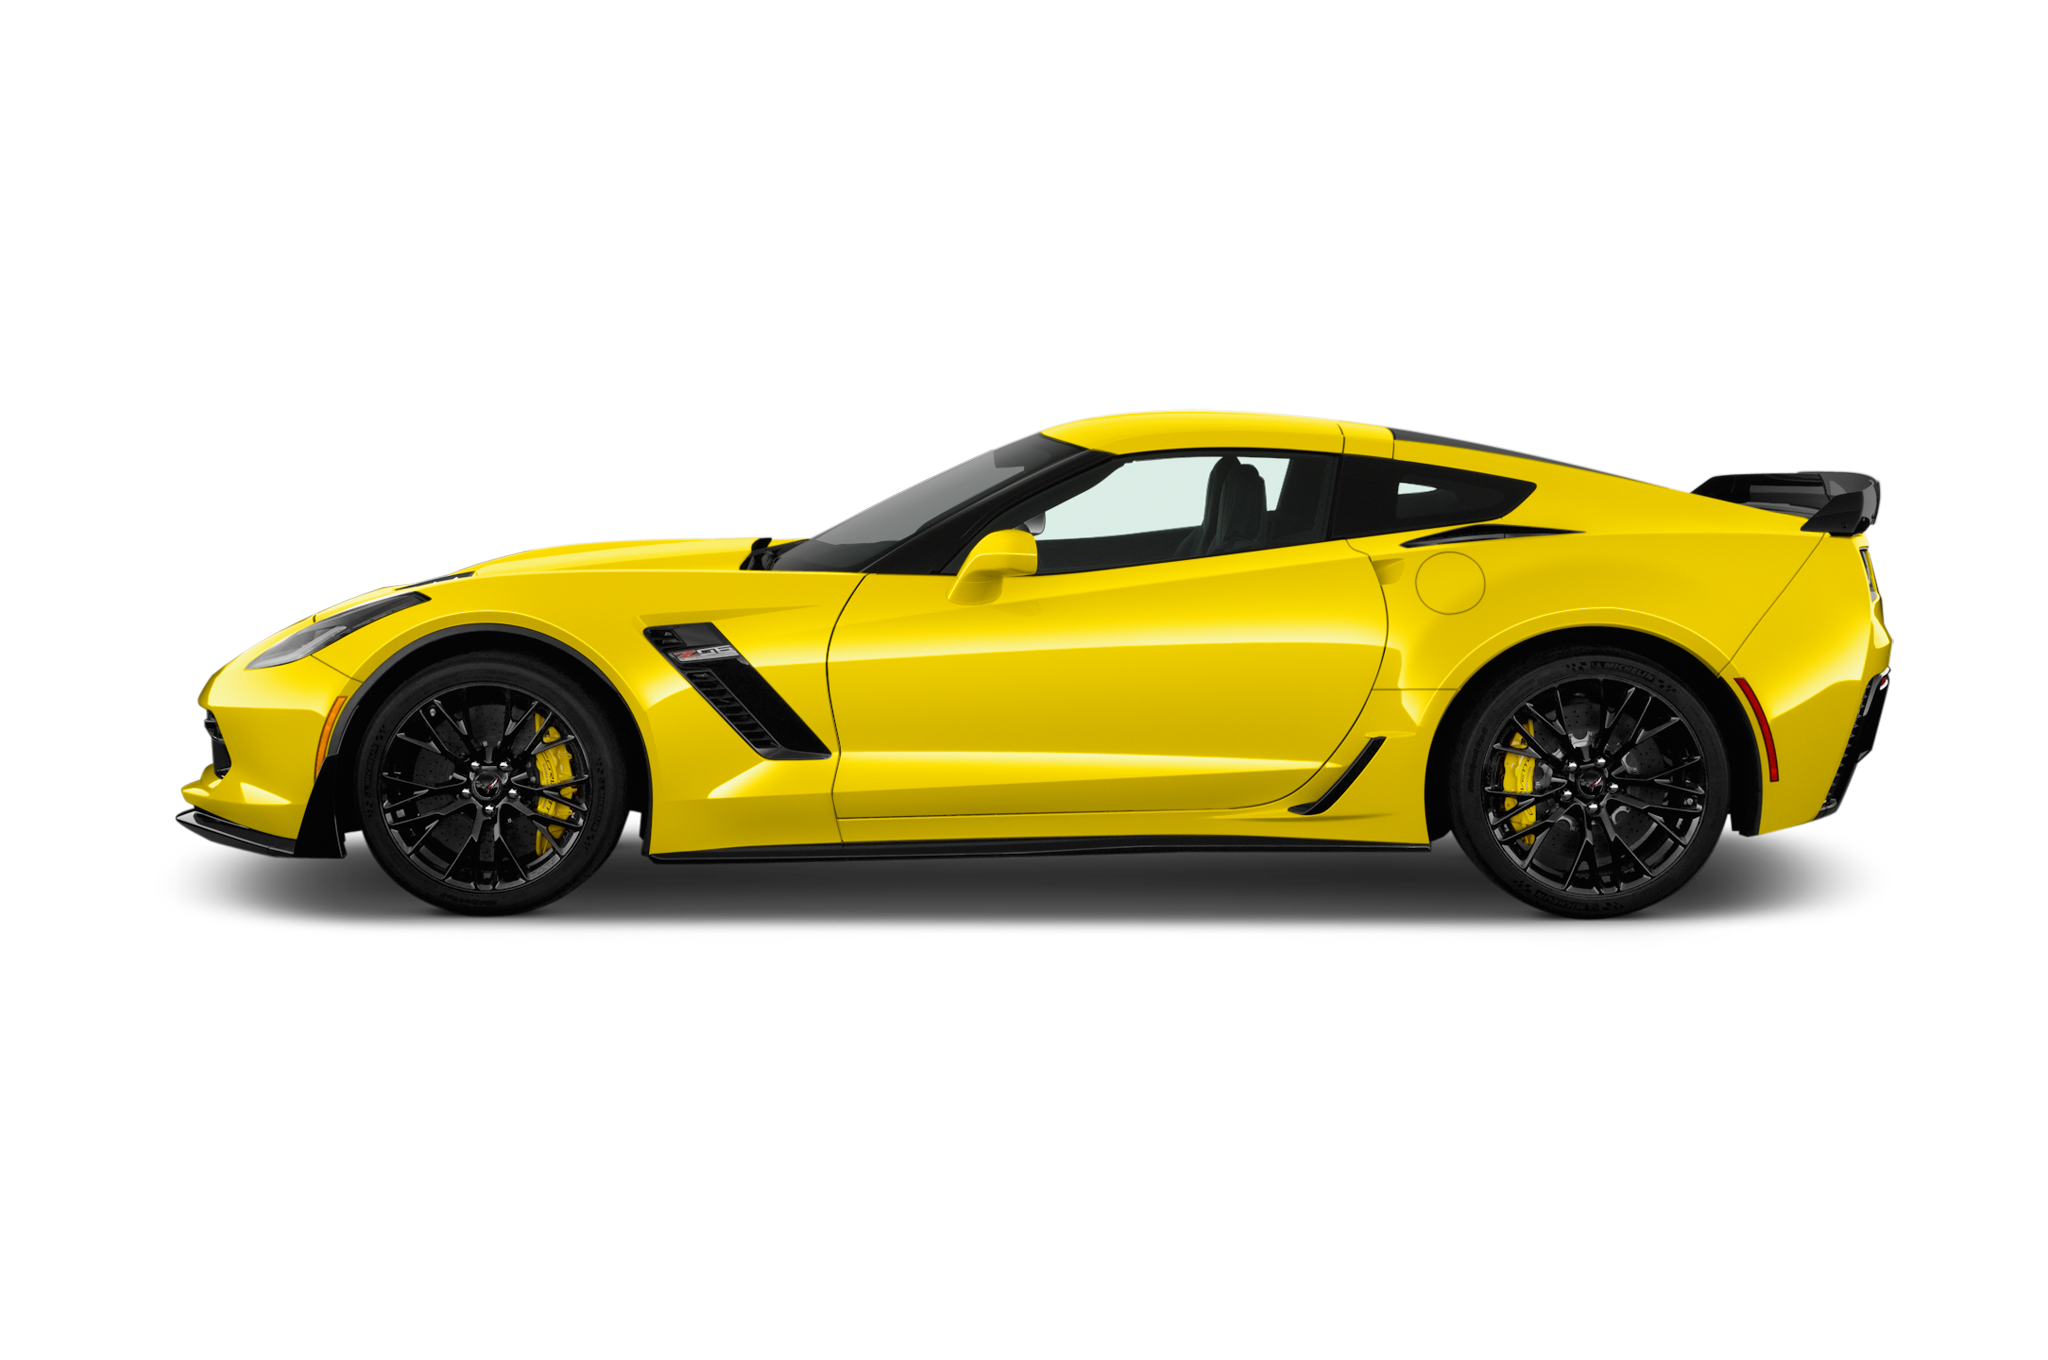 Chevrolet clipart yellow car Png Chevrolet clipart in PNG